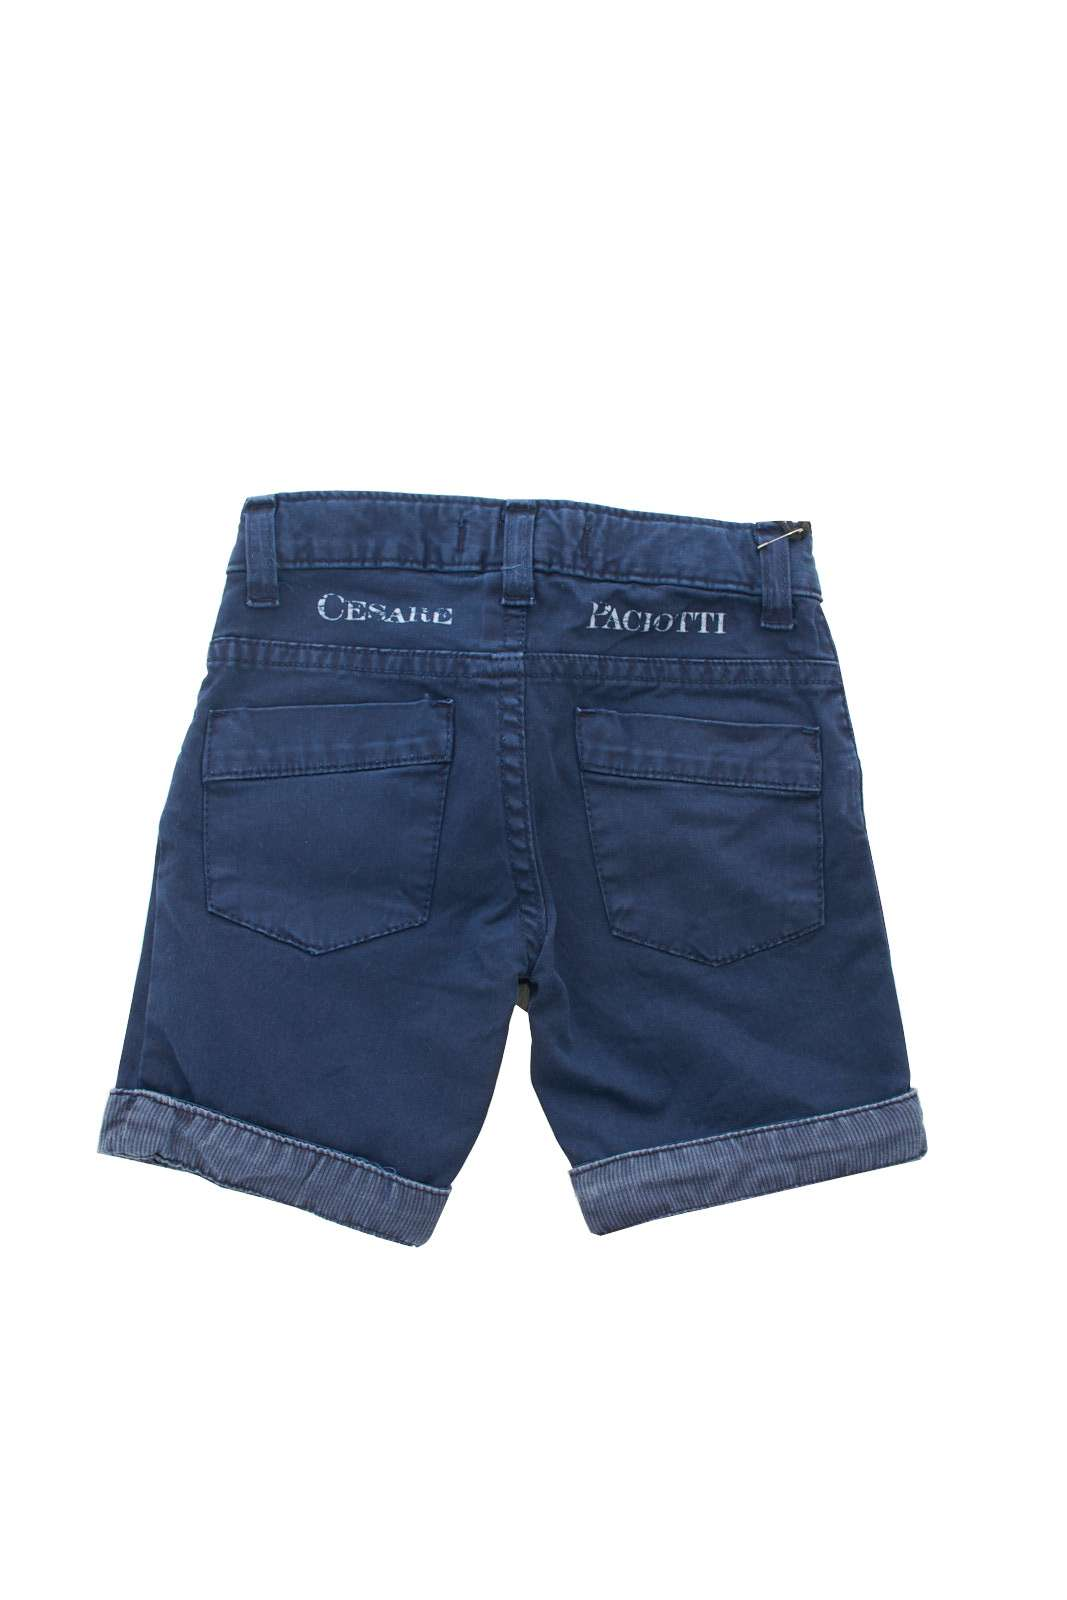 https://www.parmax.com/media/catalog/product/a/i/PE-outlet_parmax-pantaloni-bambino-Cesare-Paciotti-BMP508N-B.jpg